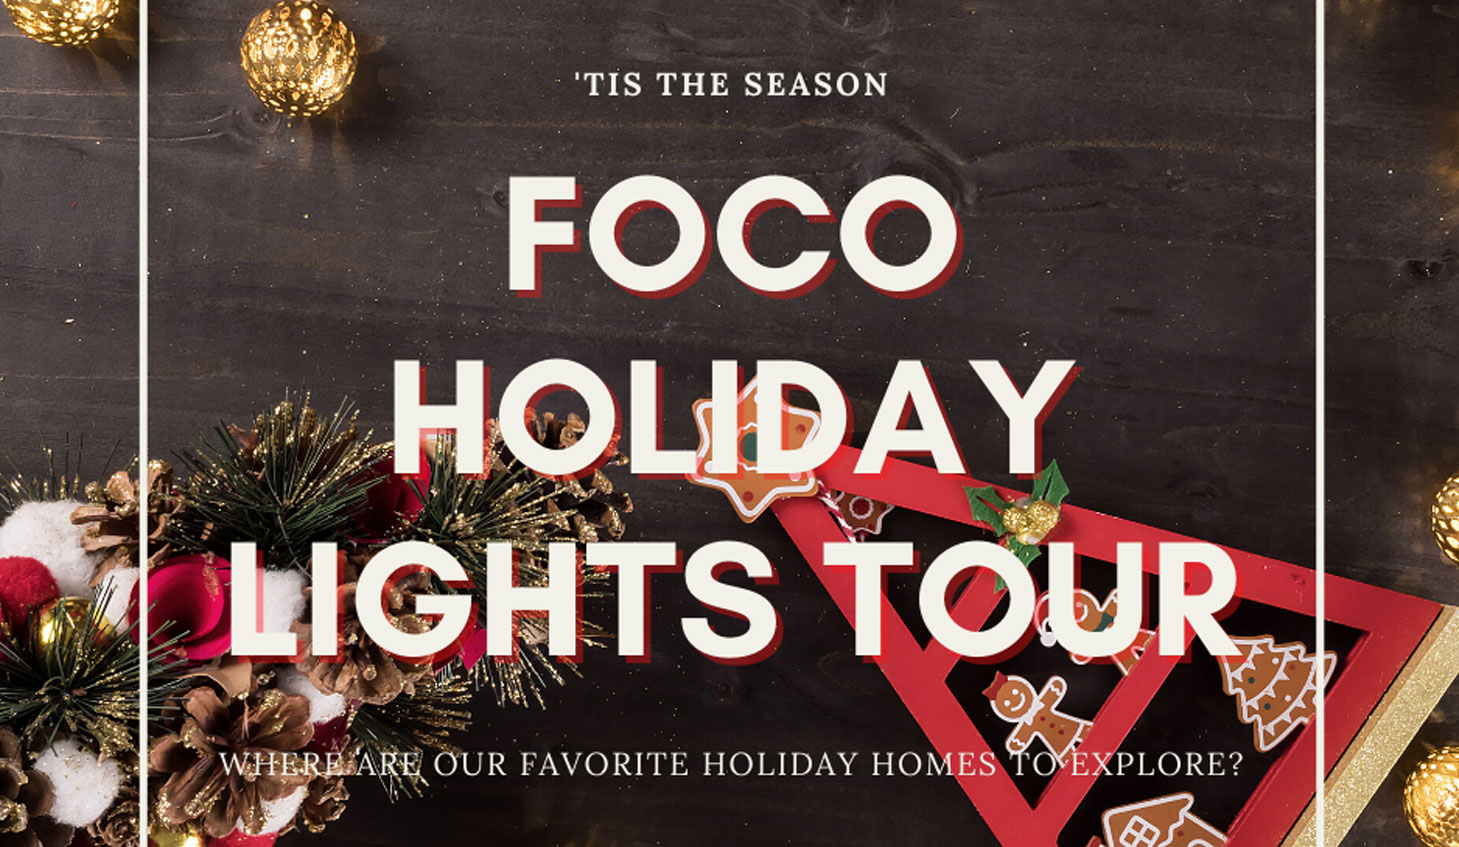 Experience a night of lights in Forsyth County, Georgia